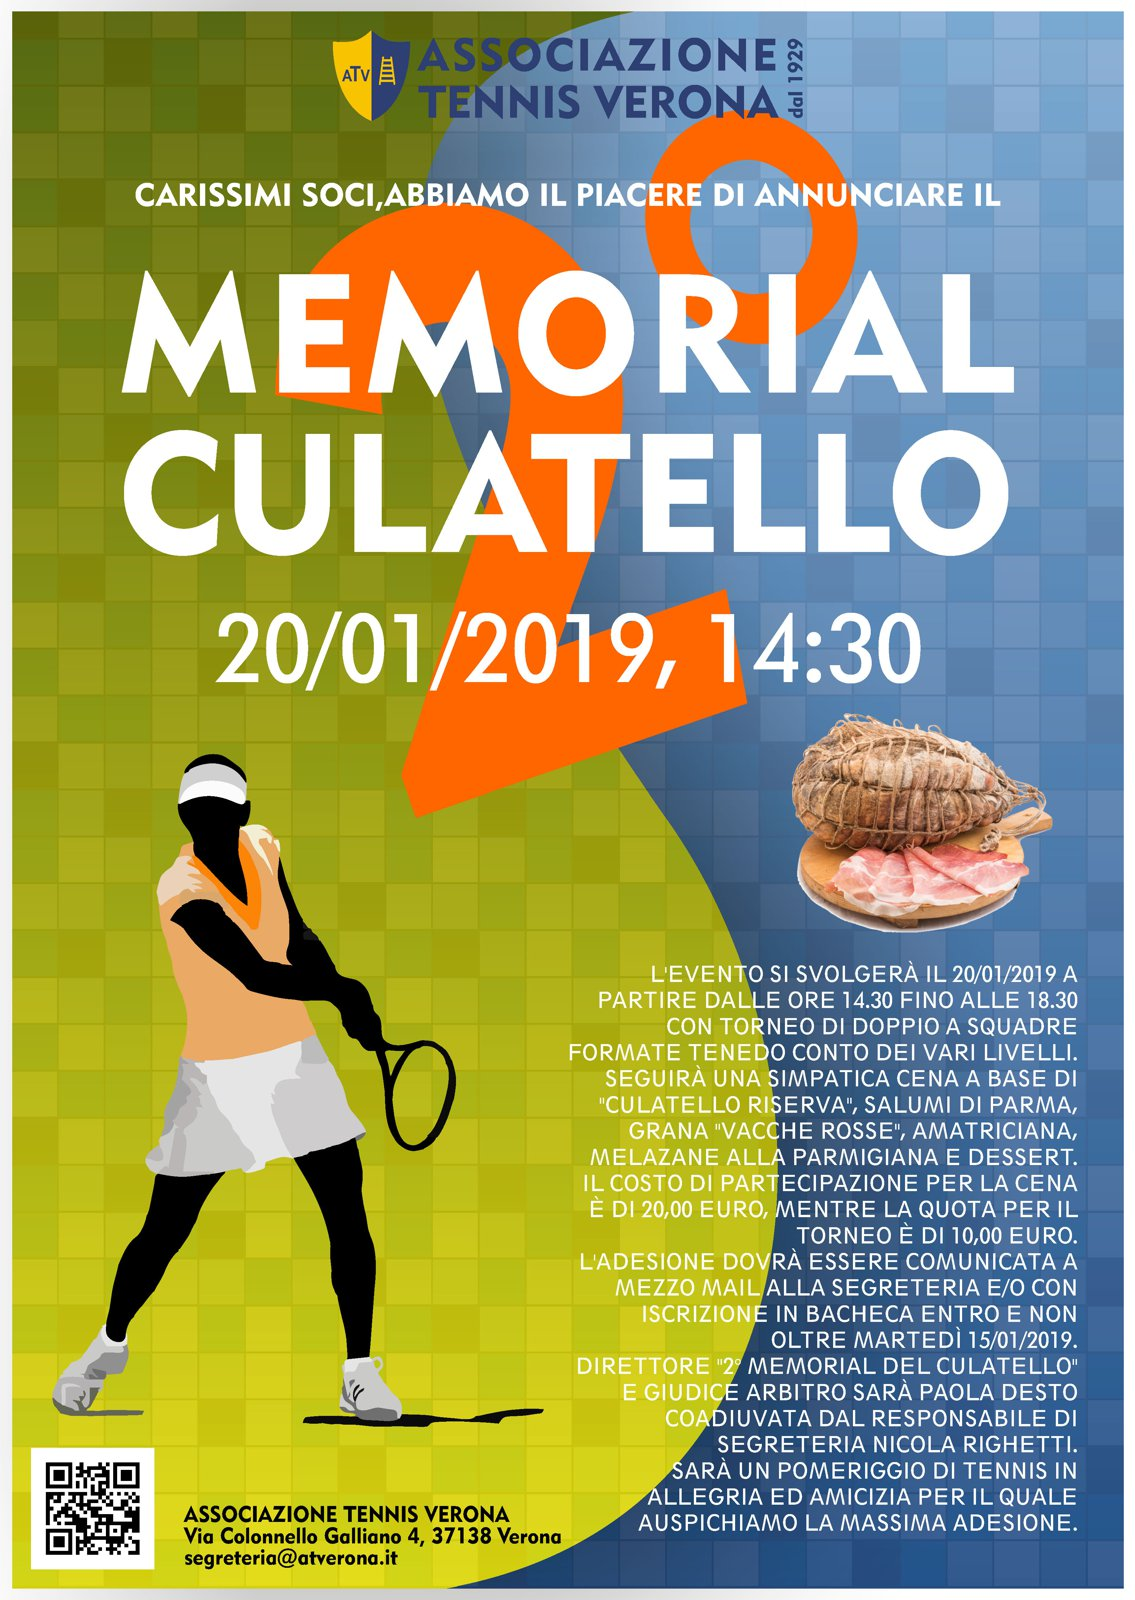 2° MEMORIAL CULATELLO